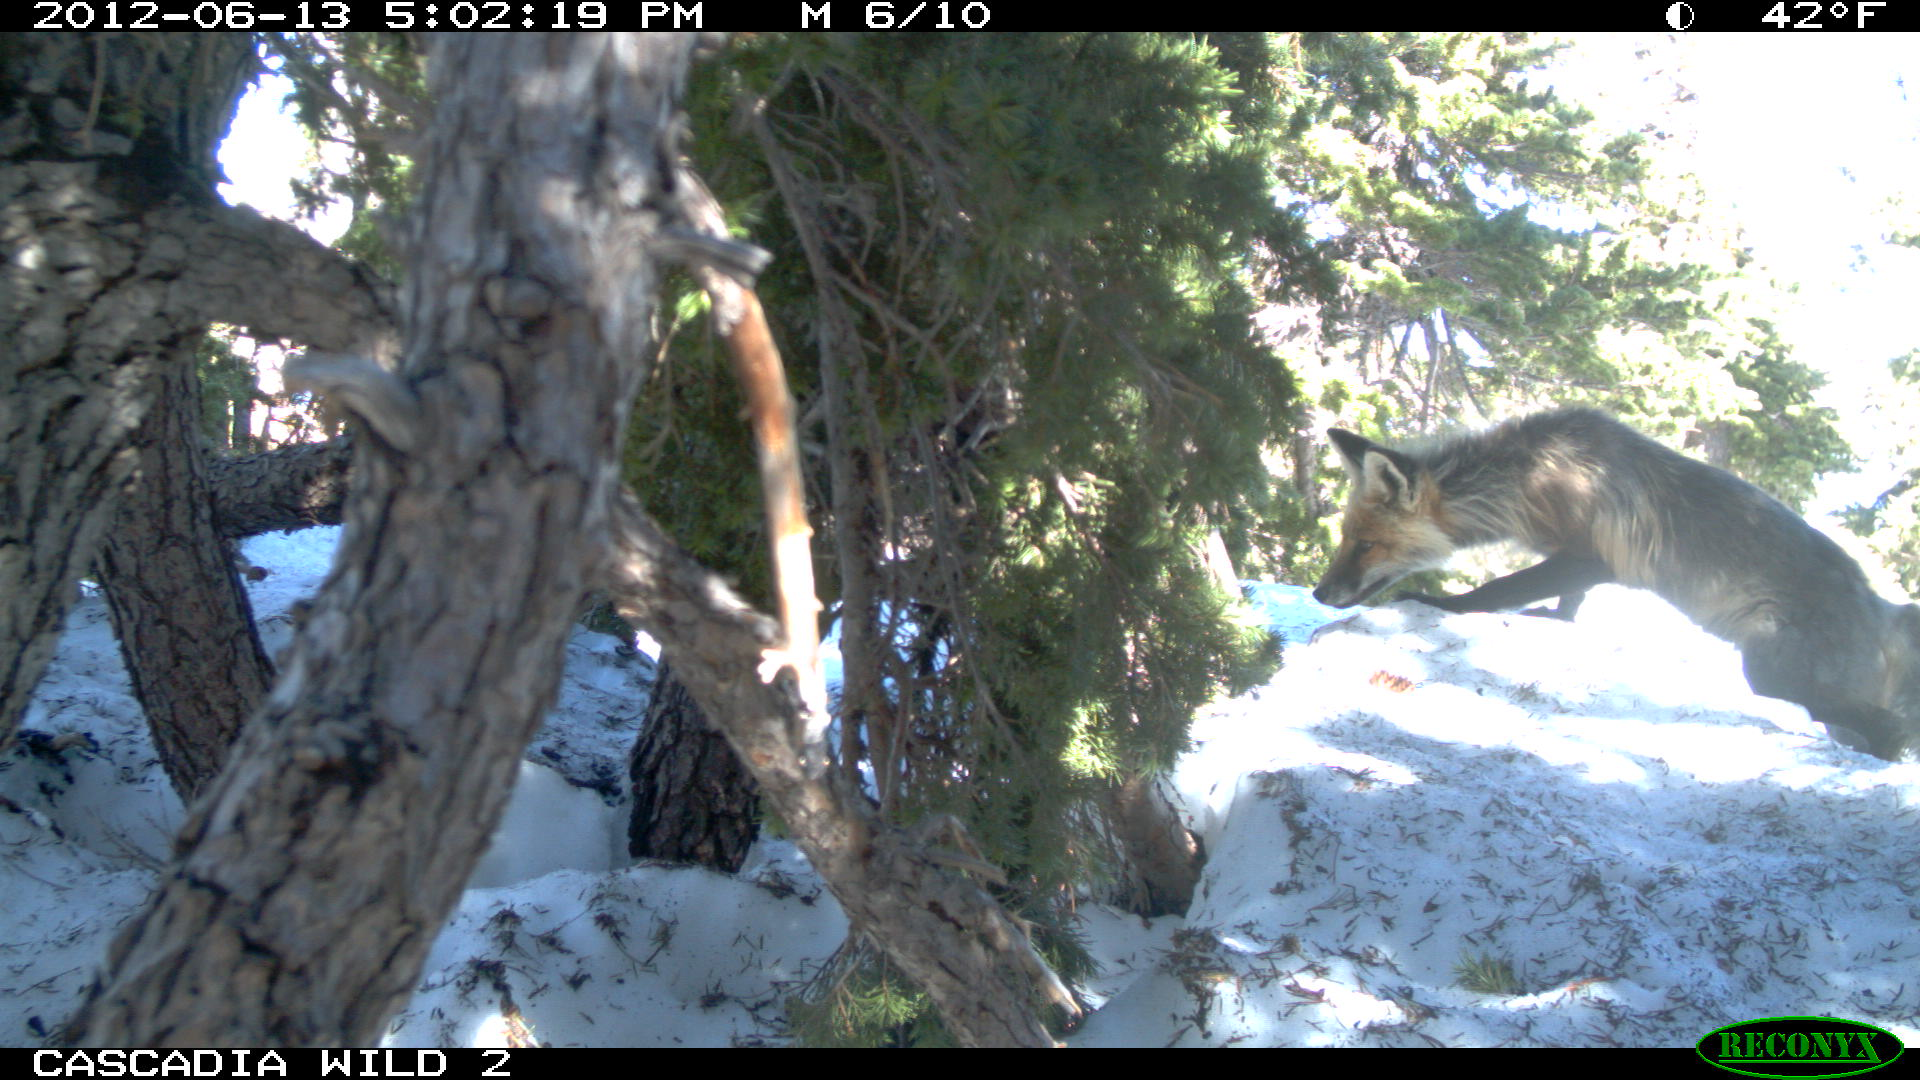 Red Fox climbing over a log stealthily in the needle-ridden snow.